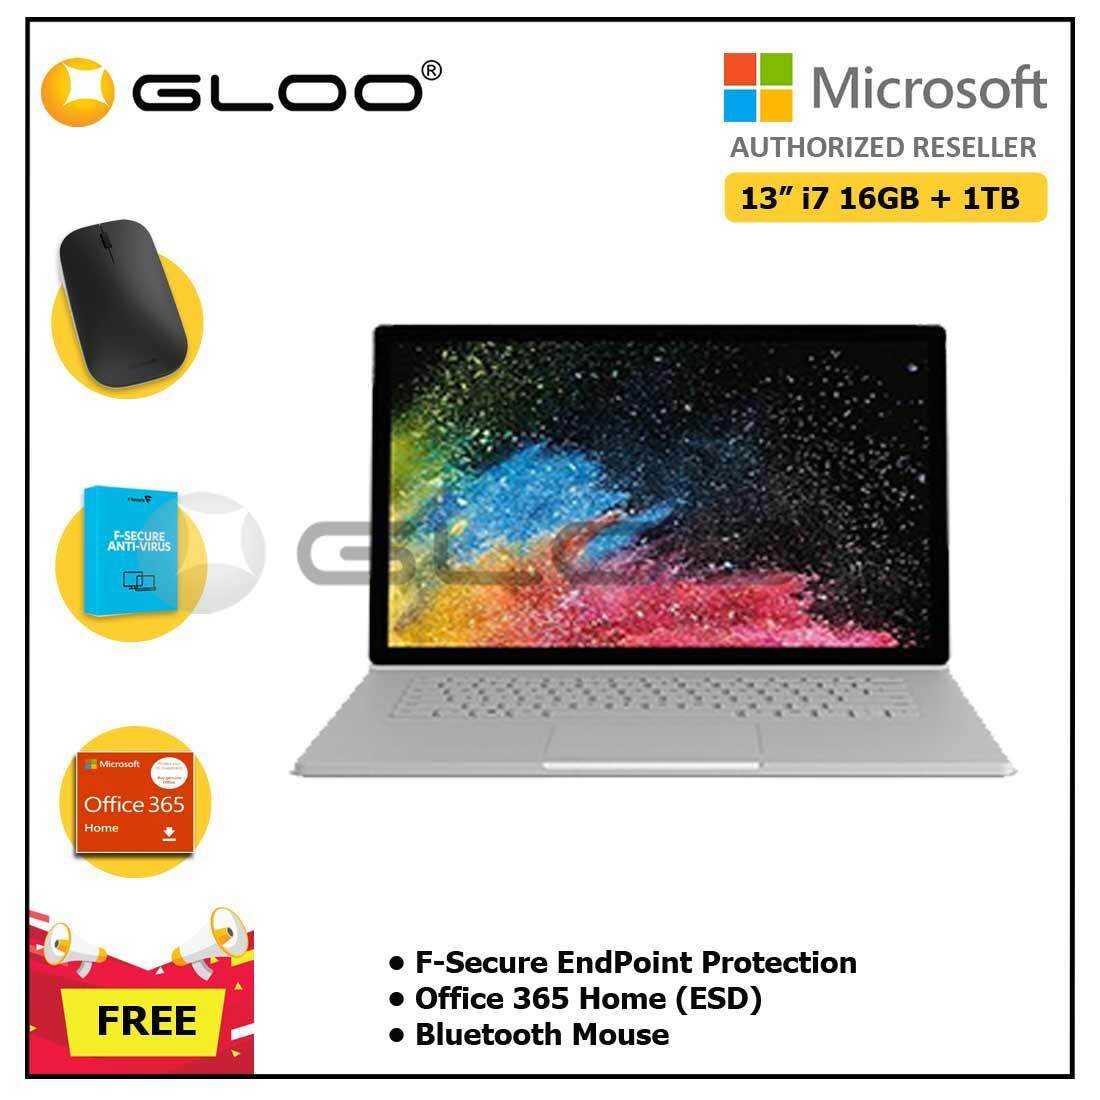 Microsoft Surface Book 2 13 Core i7/16GB RAM - 1TB + F-Secure EndPoint Protection + Office 365 Home ESD + Bluetooth Mouse Malaysia